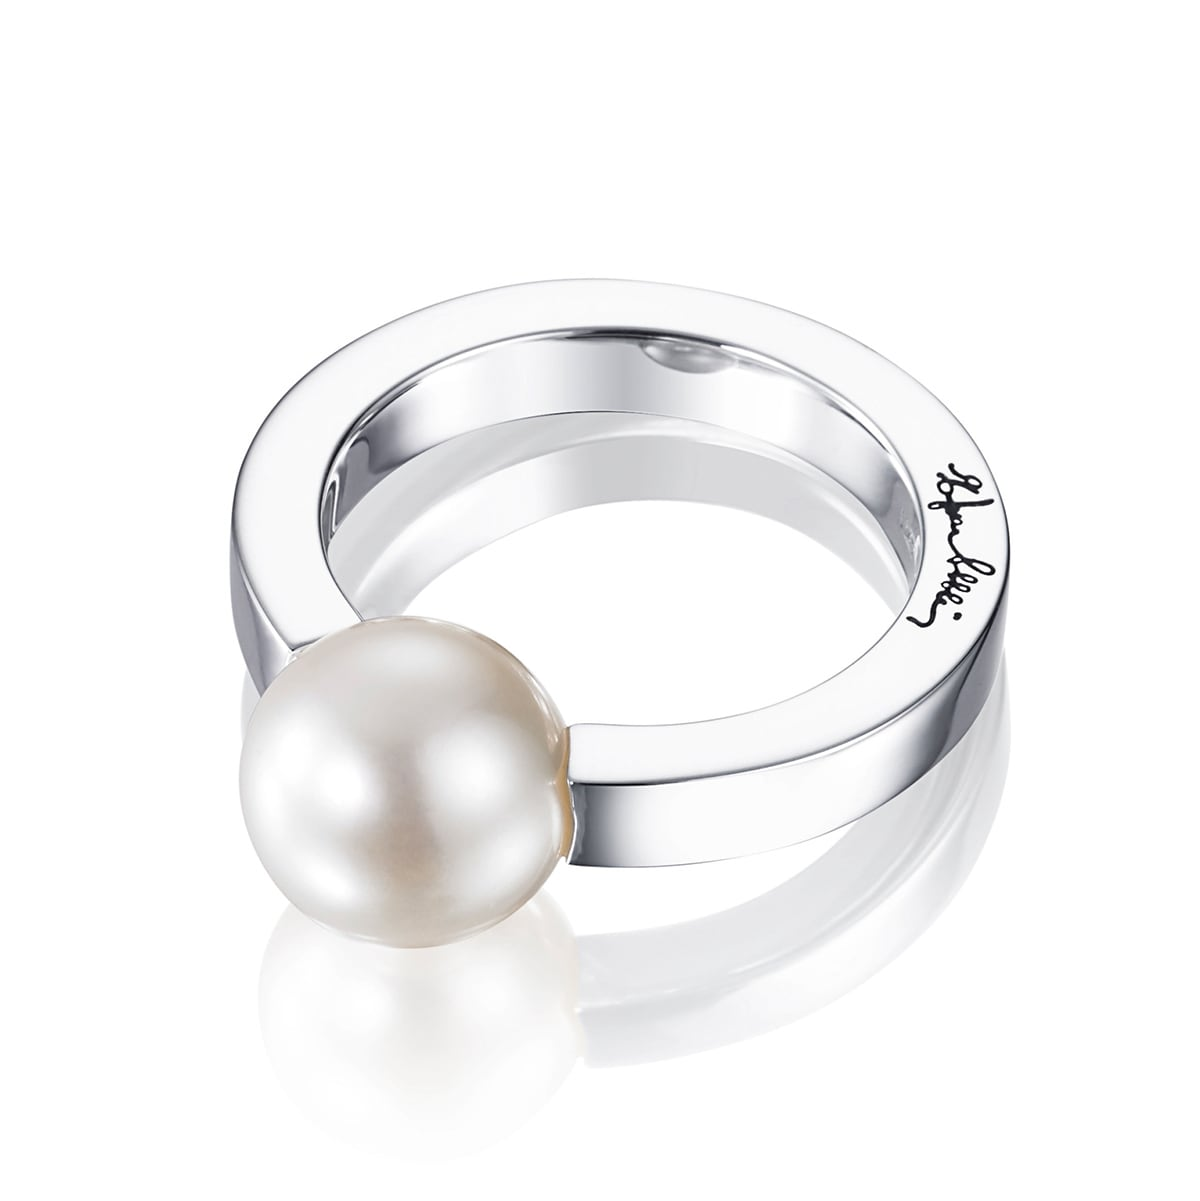 60s Pearl Ring 13-100-01185(2)1